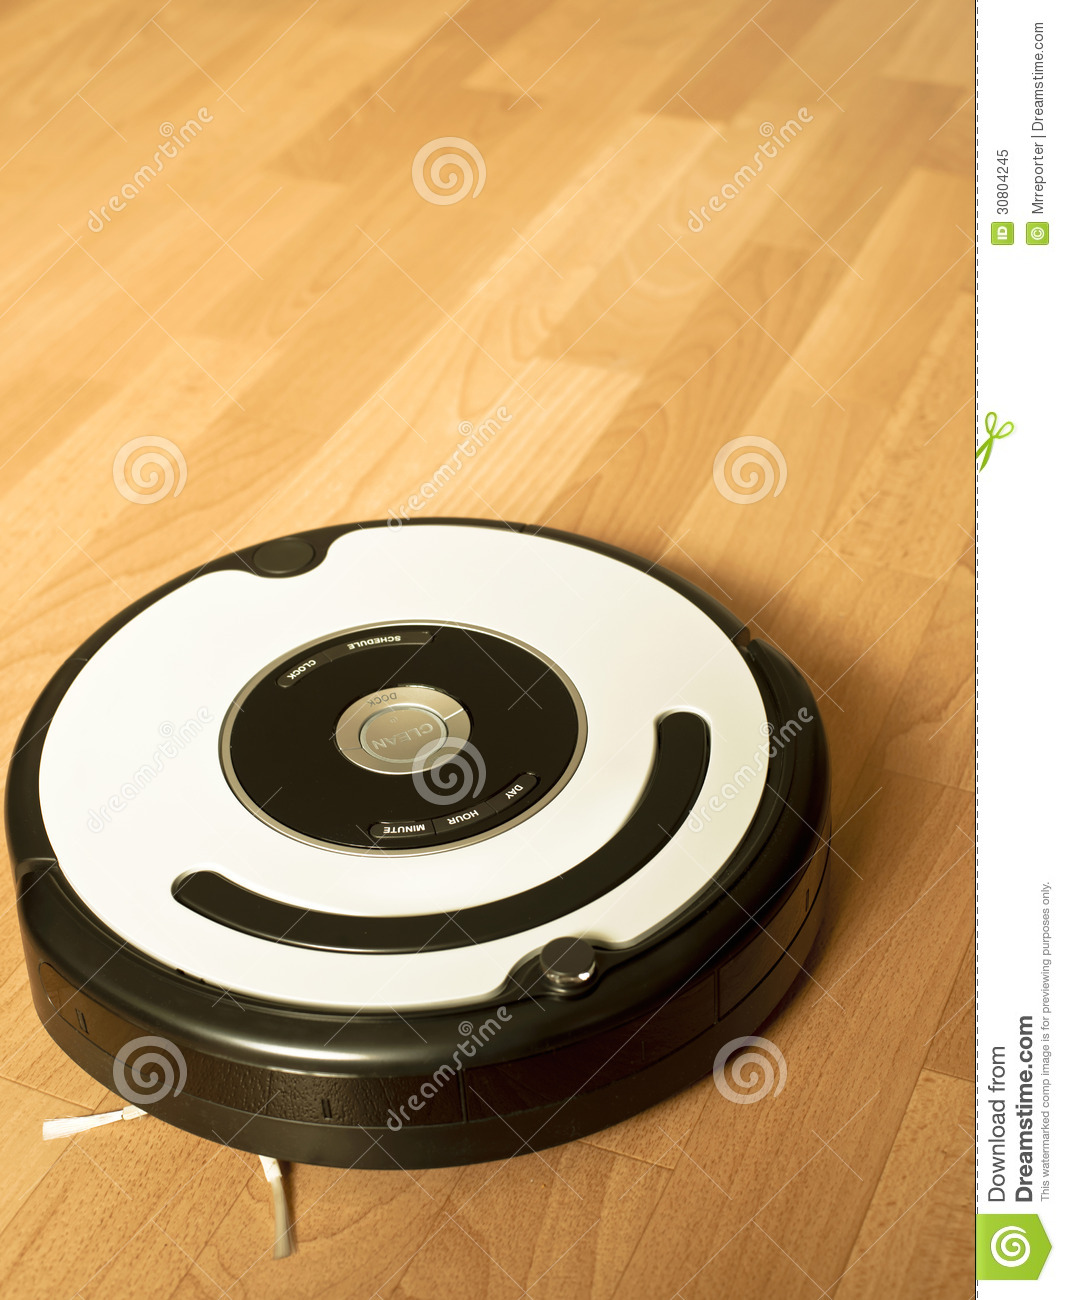 Cleaning Robot Stock Image Image Of Electric Hygiene